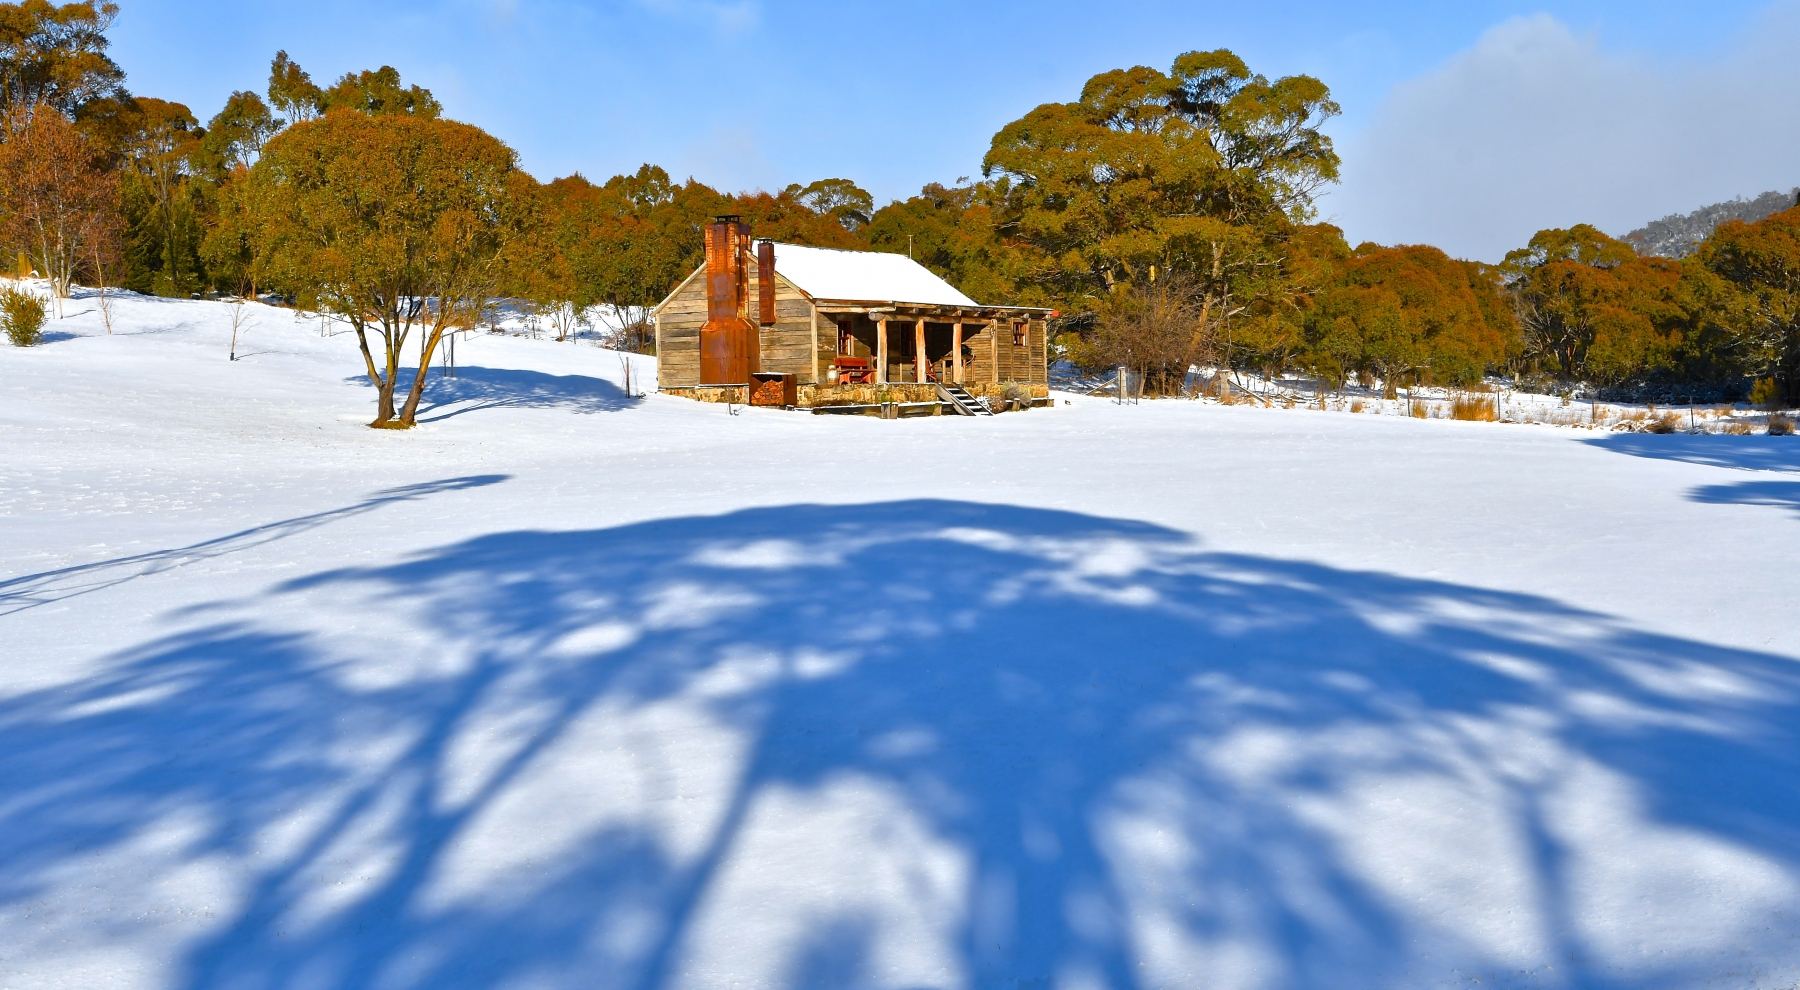 Mid-winter and some welcome blue skies and overnight snow at Moonbah River Hut